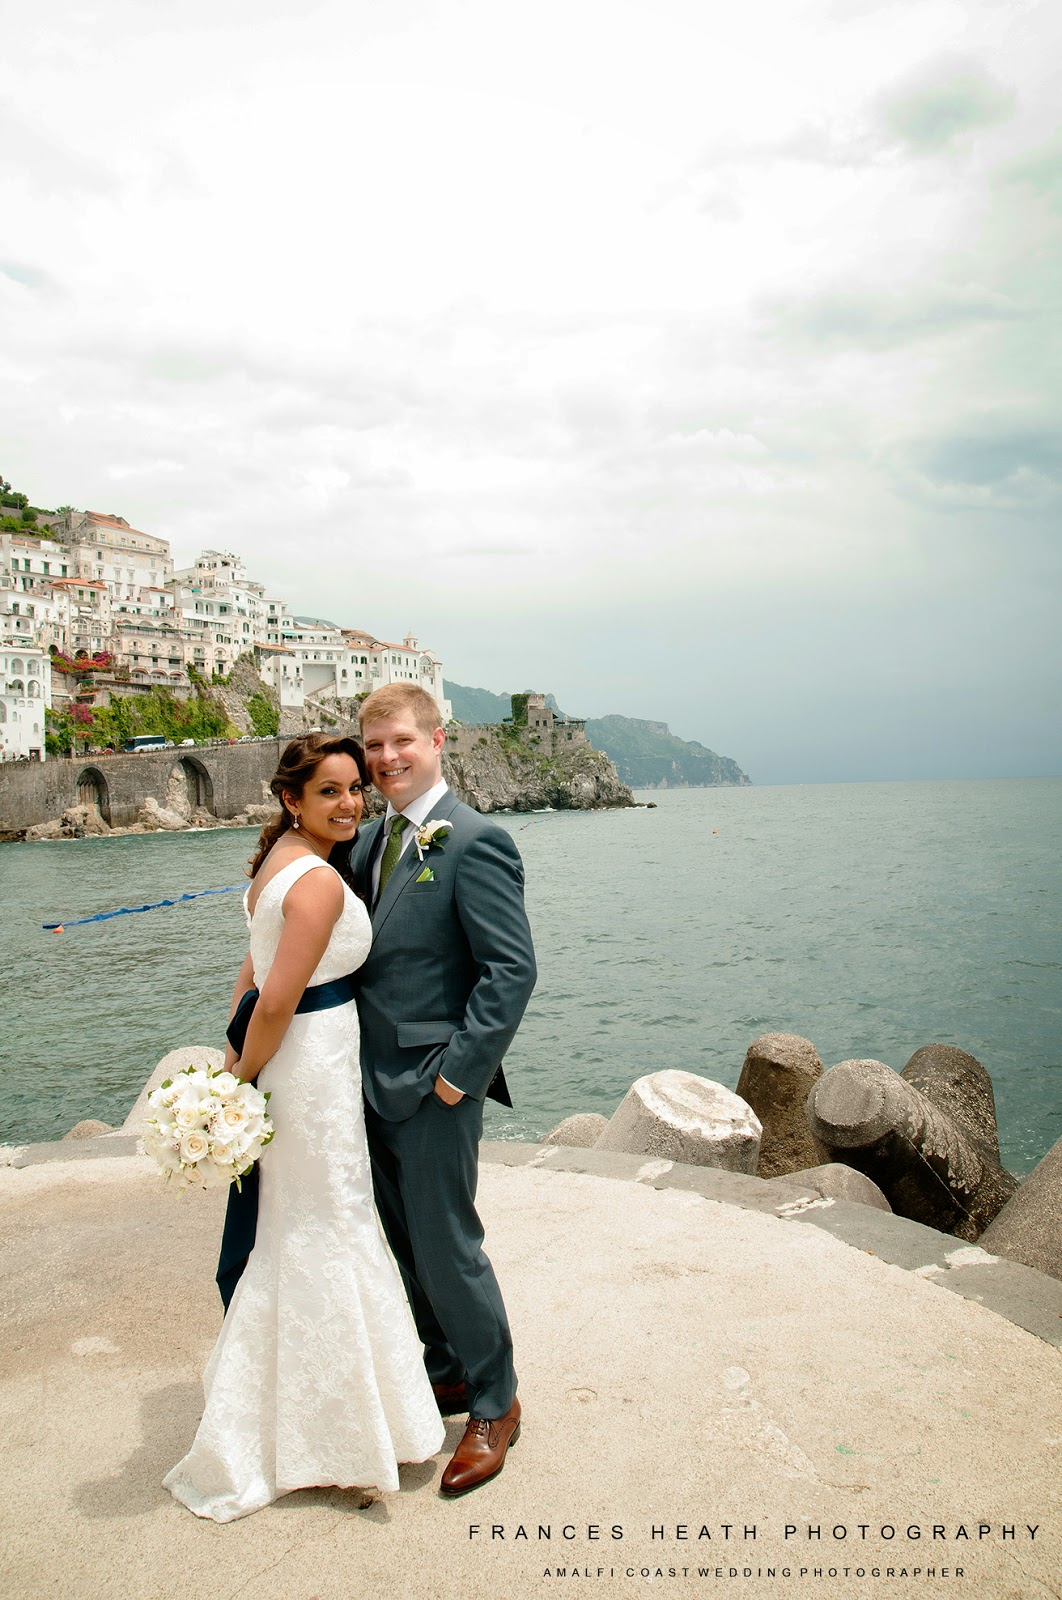 Bride and groom at their wedding in Amalfi